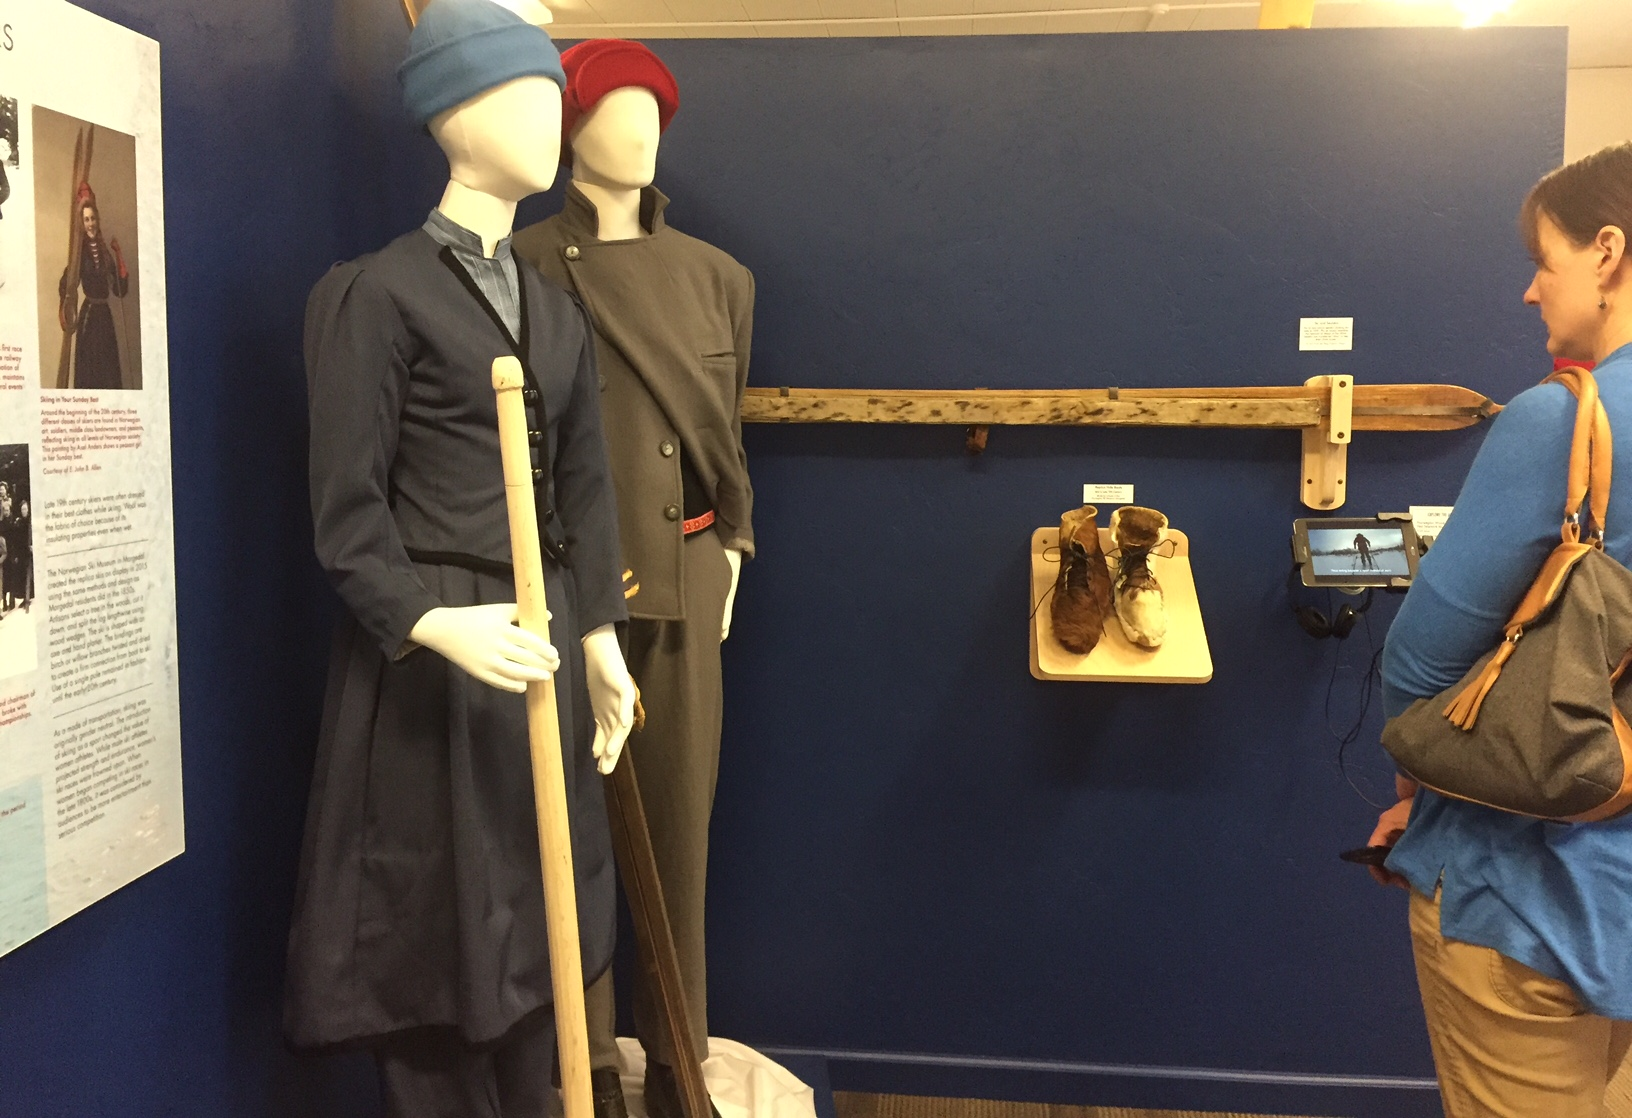 Give your brain a break from politics by visiting the Deschutes Historical Museum and checking out their awesome Nordic skiing exhibit.